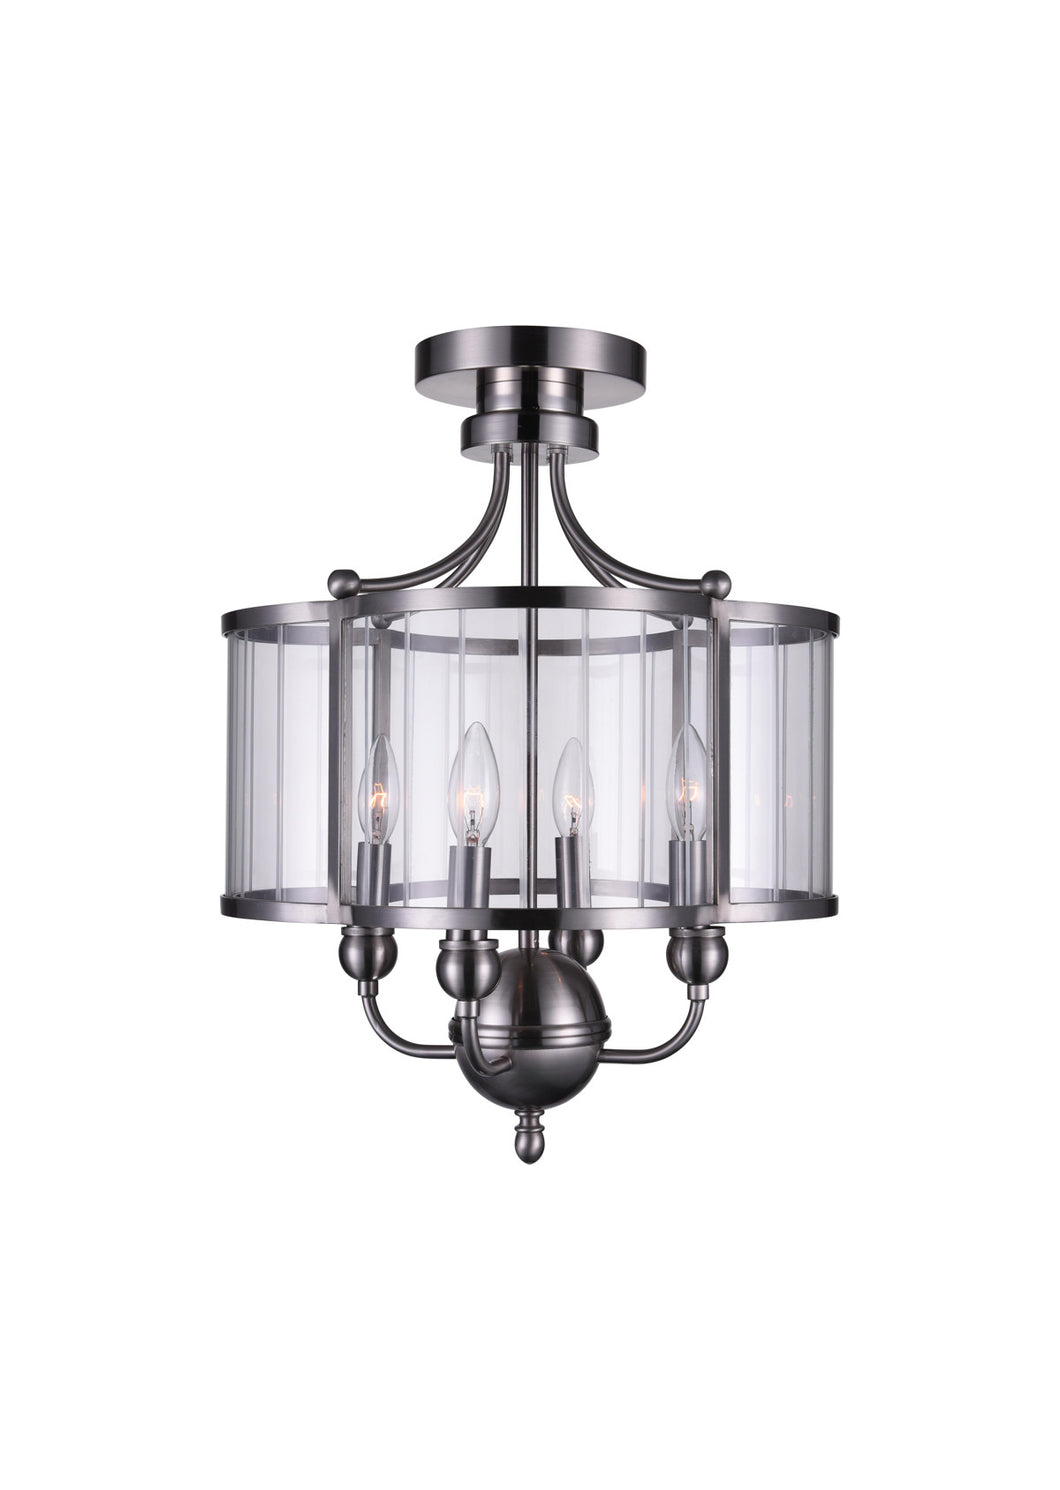 4 Light Drum Shade Semi-Flush Mount with Satin Nickel finish